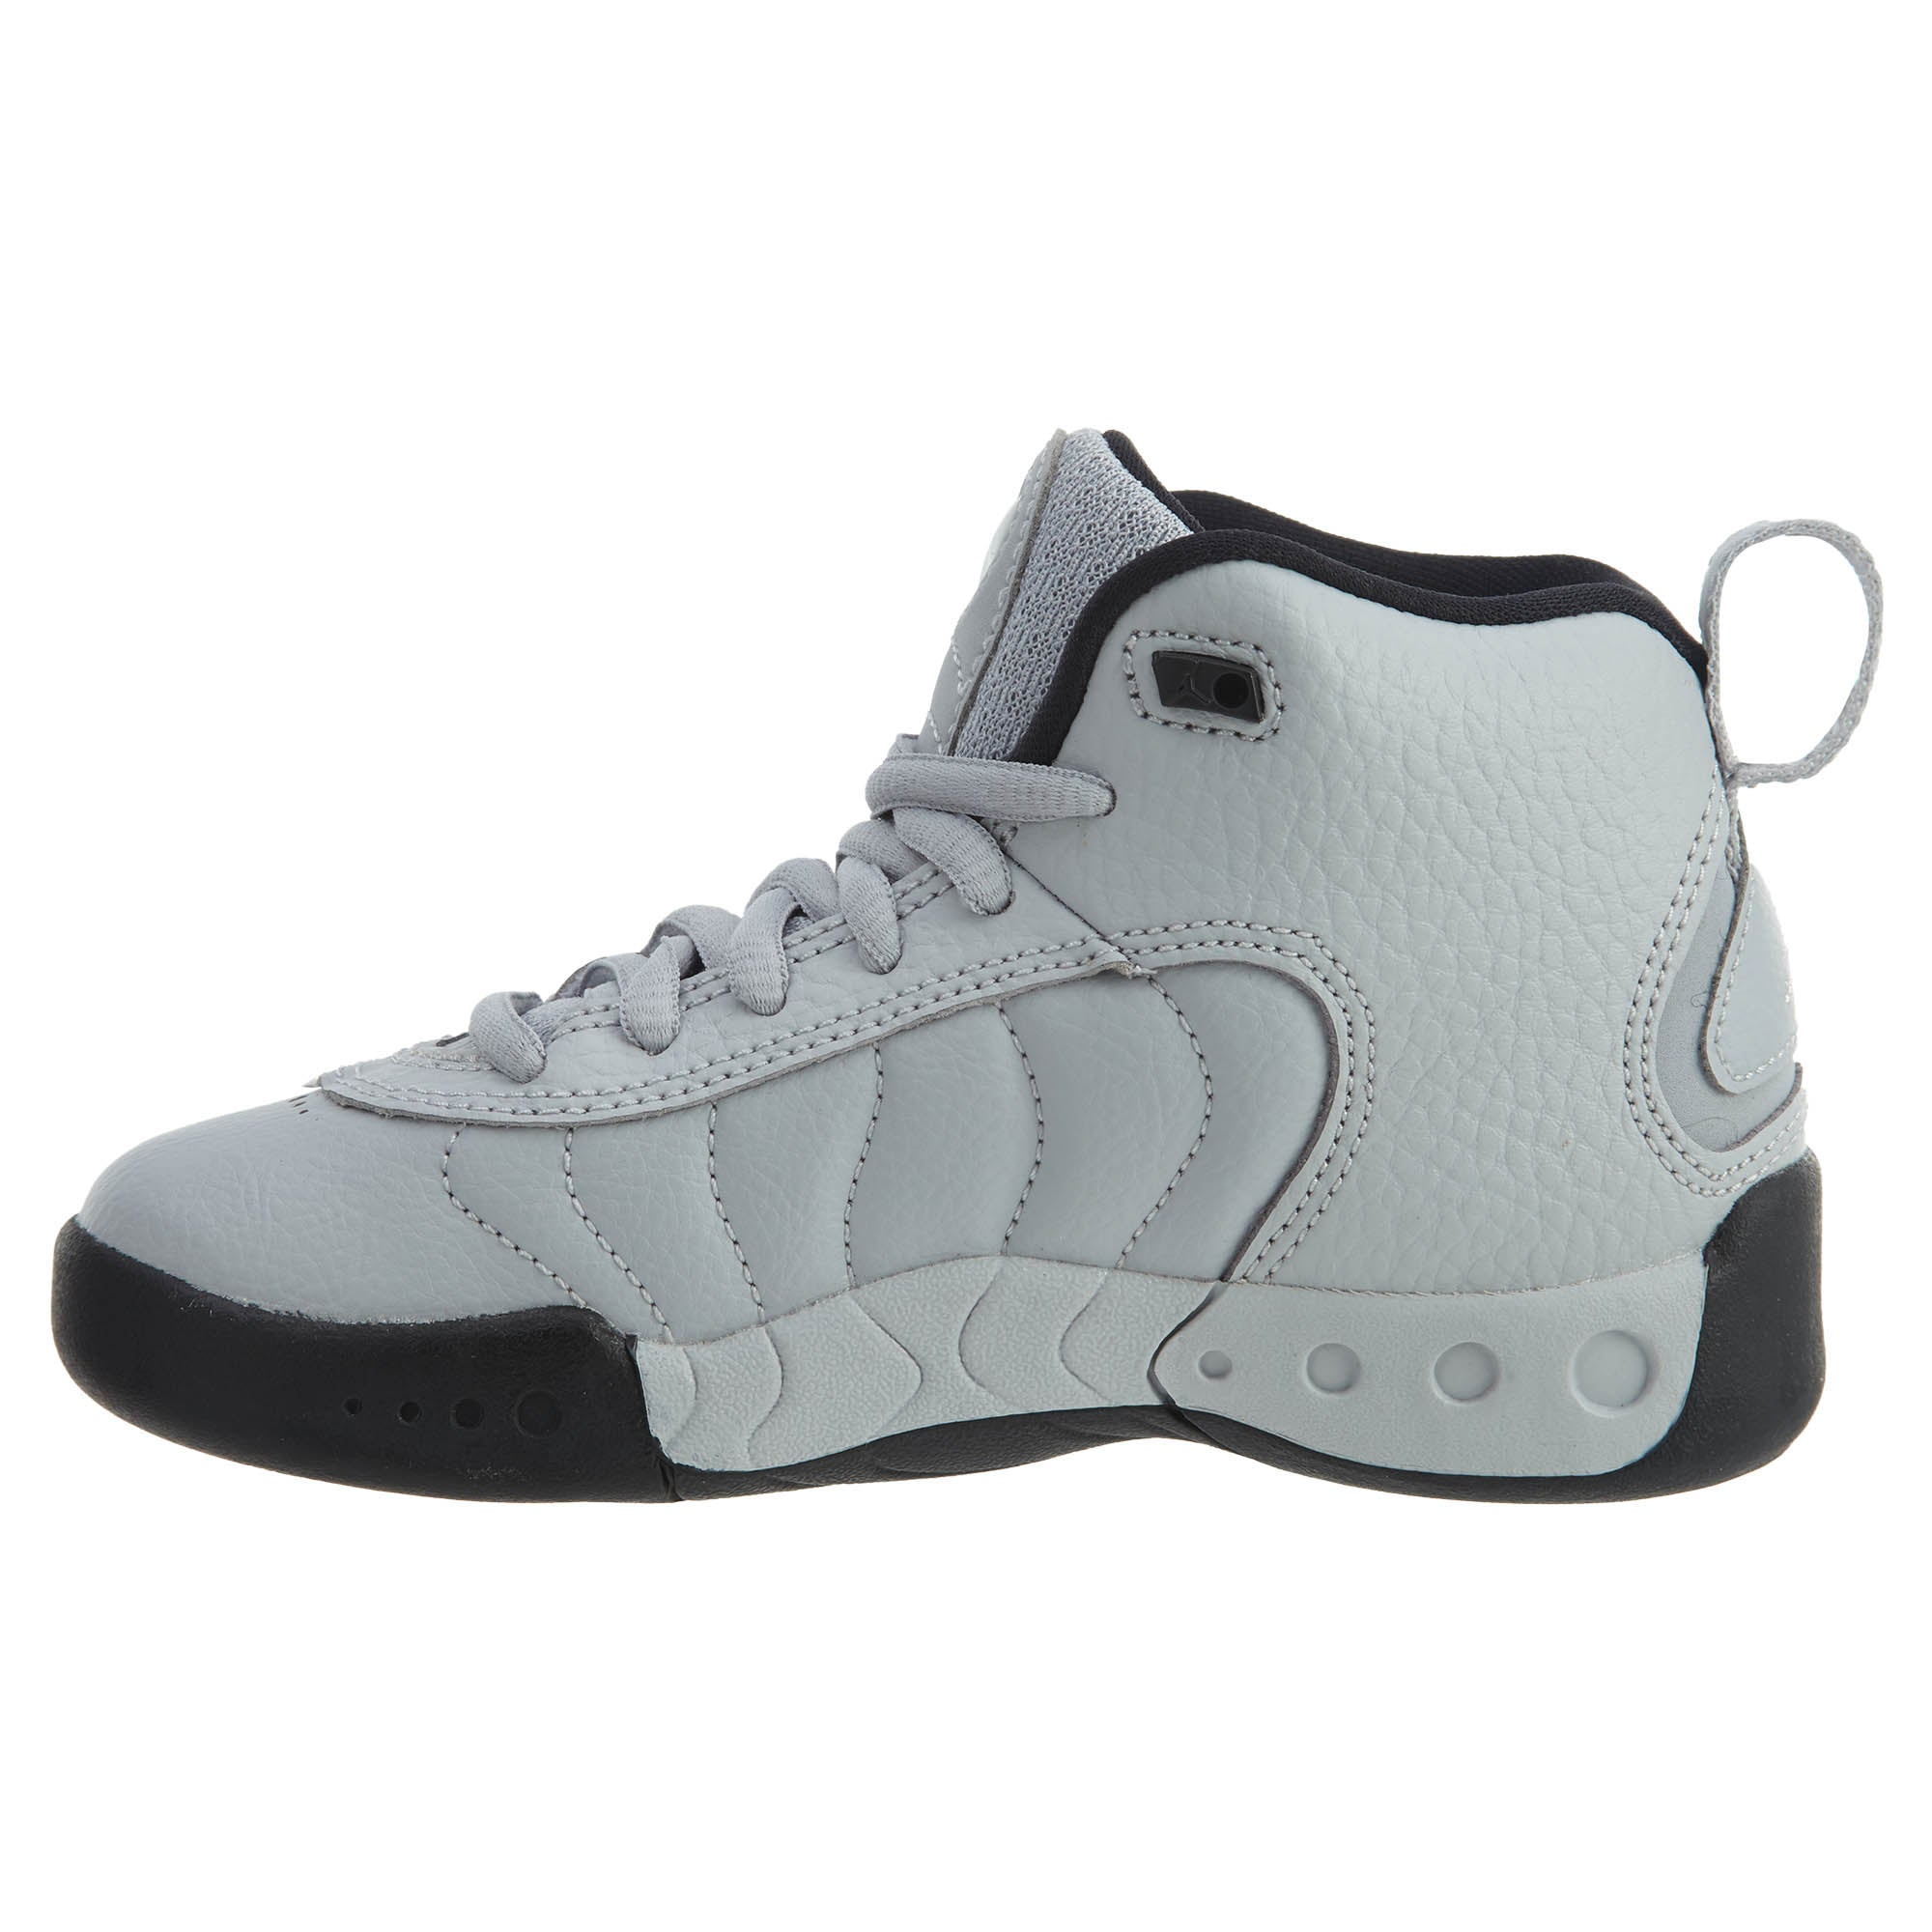 ... Jordan Jumpman Pro Little Kids Style 909419 speical offer 3f3c3 38ecb  ... 091f90cb2